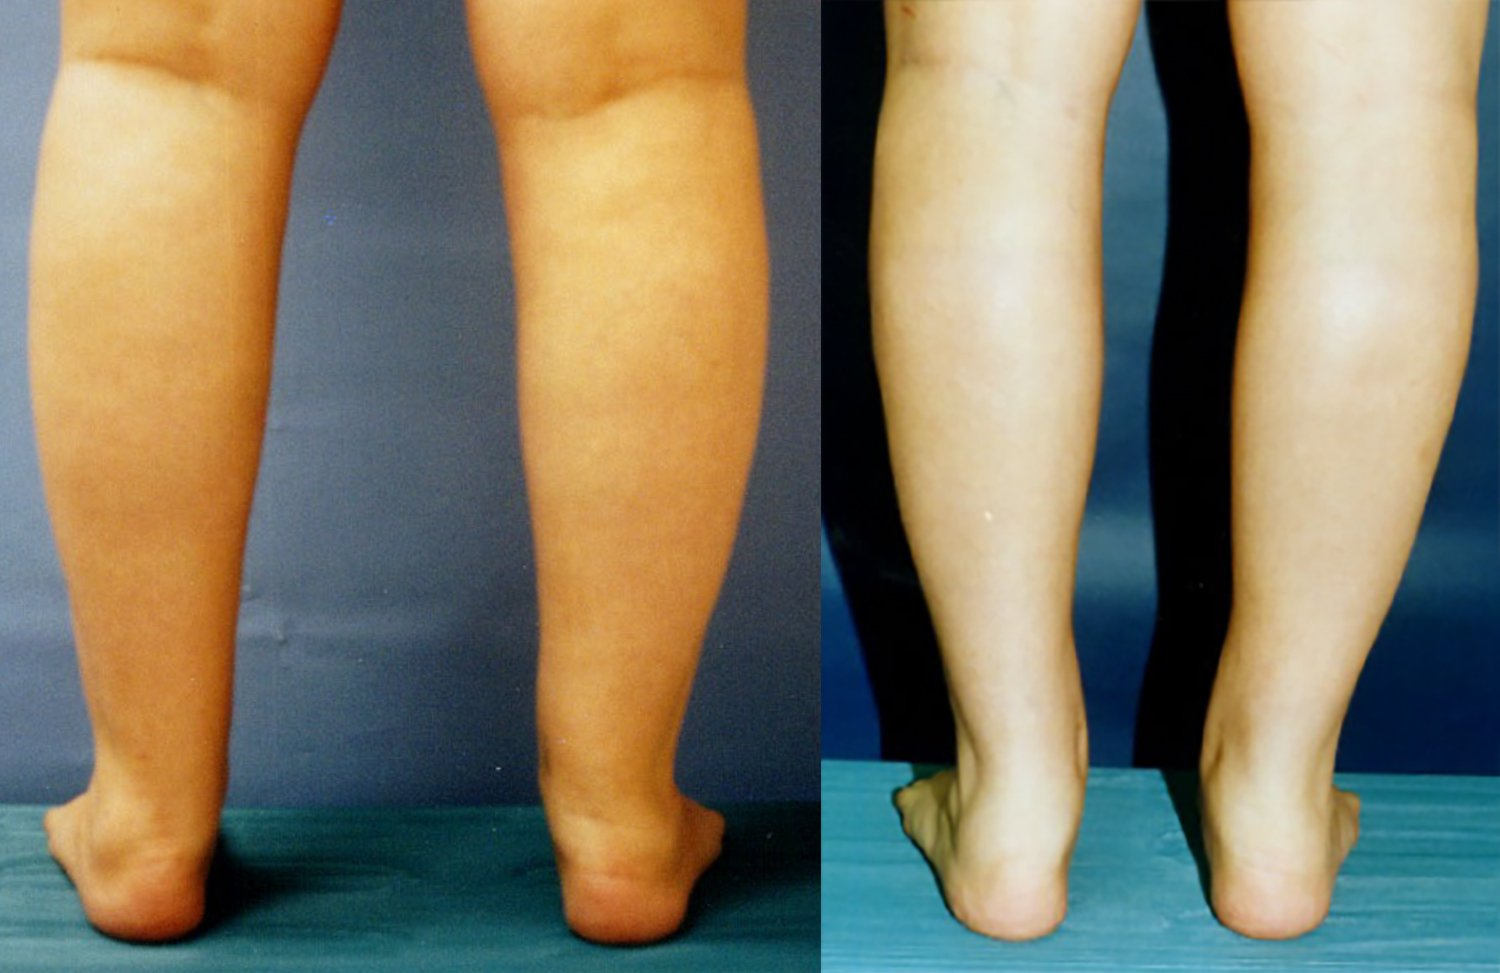 circumferential liposuction lower legs and ankles, 6 months, back